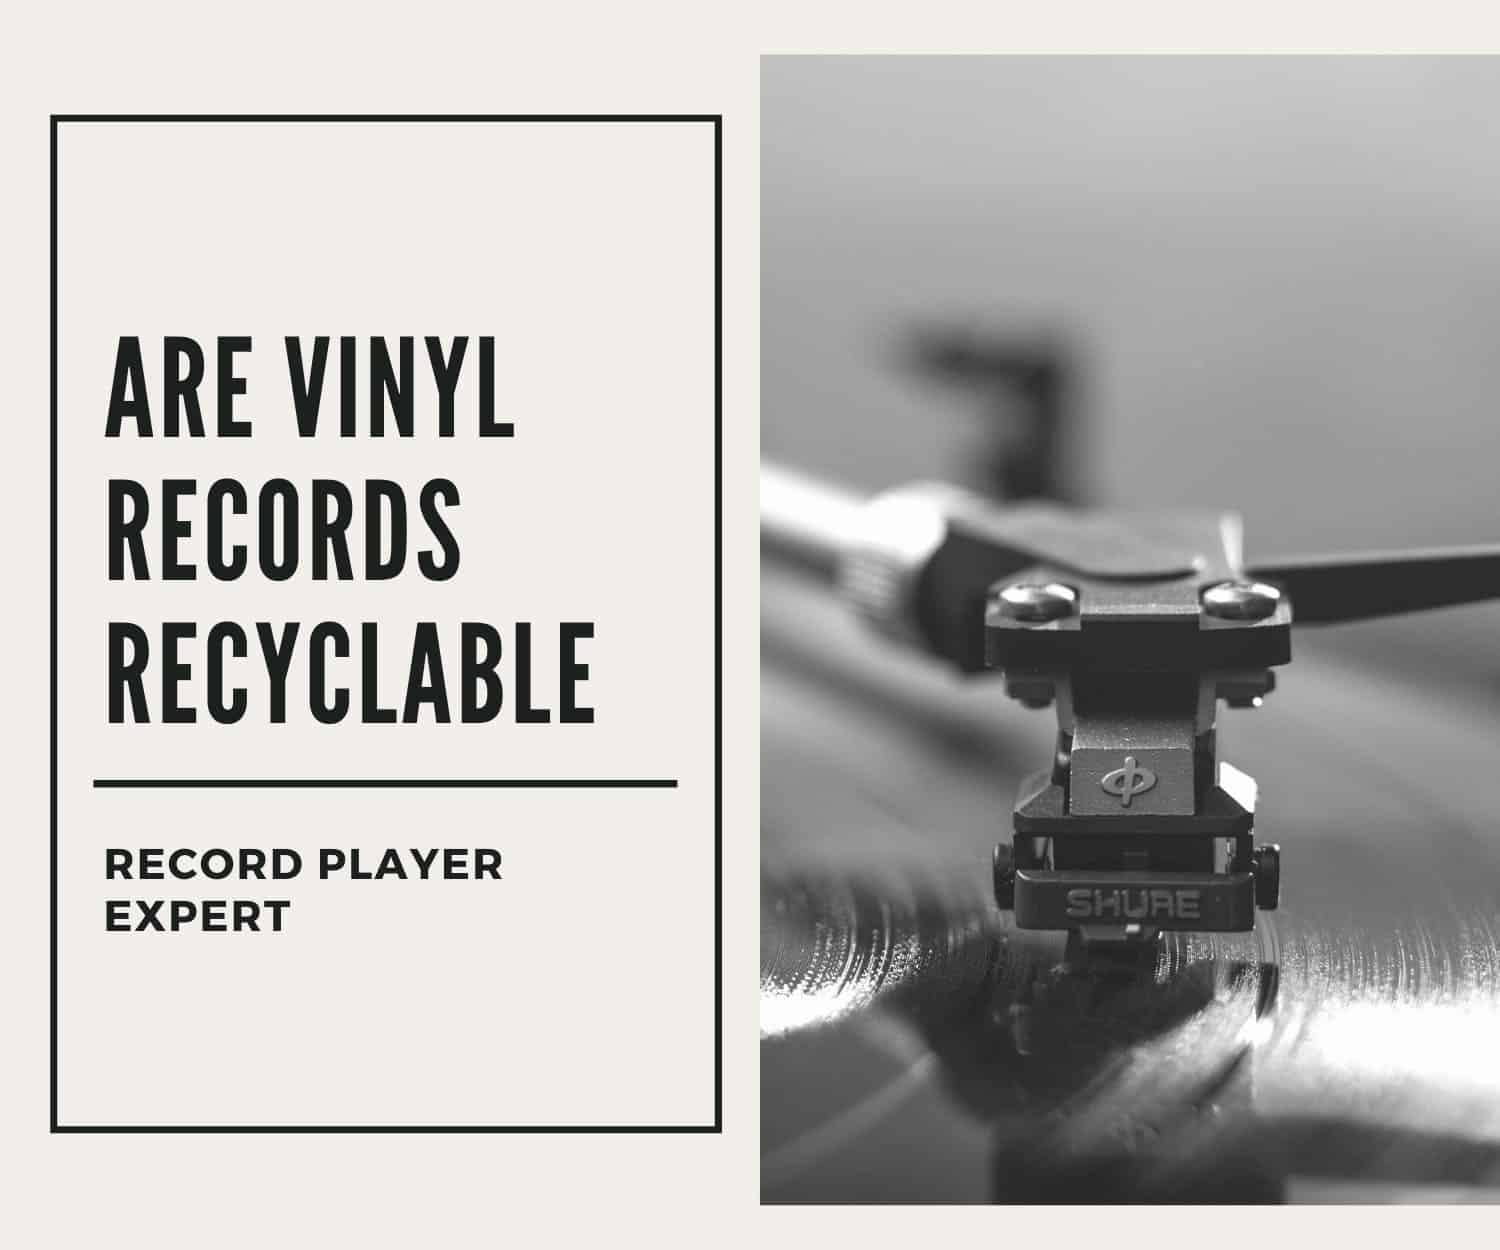 are vinyl records recyclable featured image